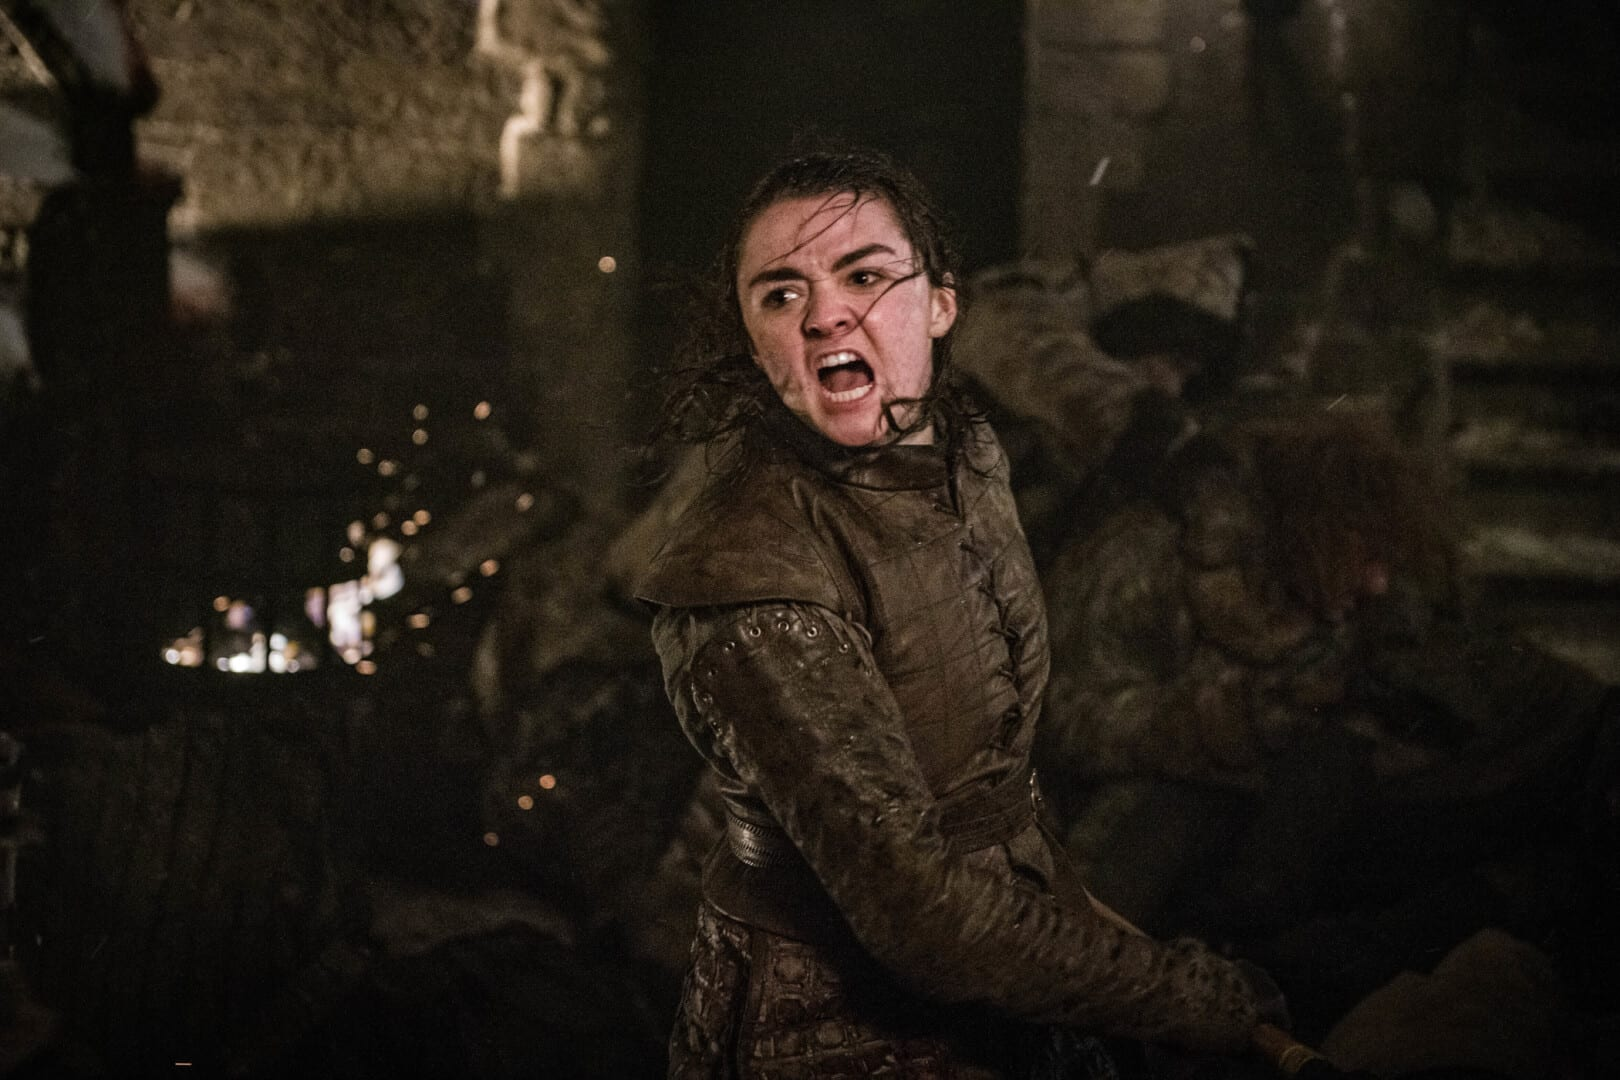 Arya Stark no terceiro episódio da oitava temporada de Game of Thrones.